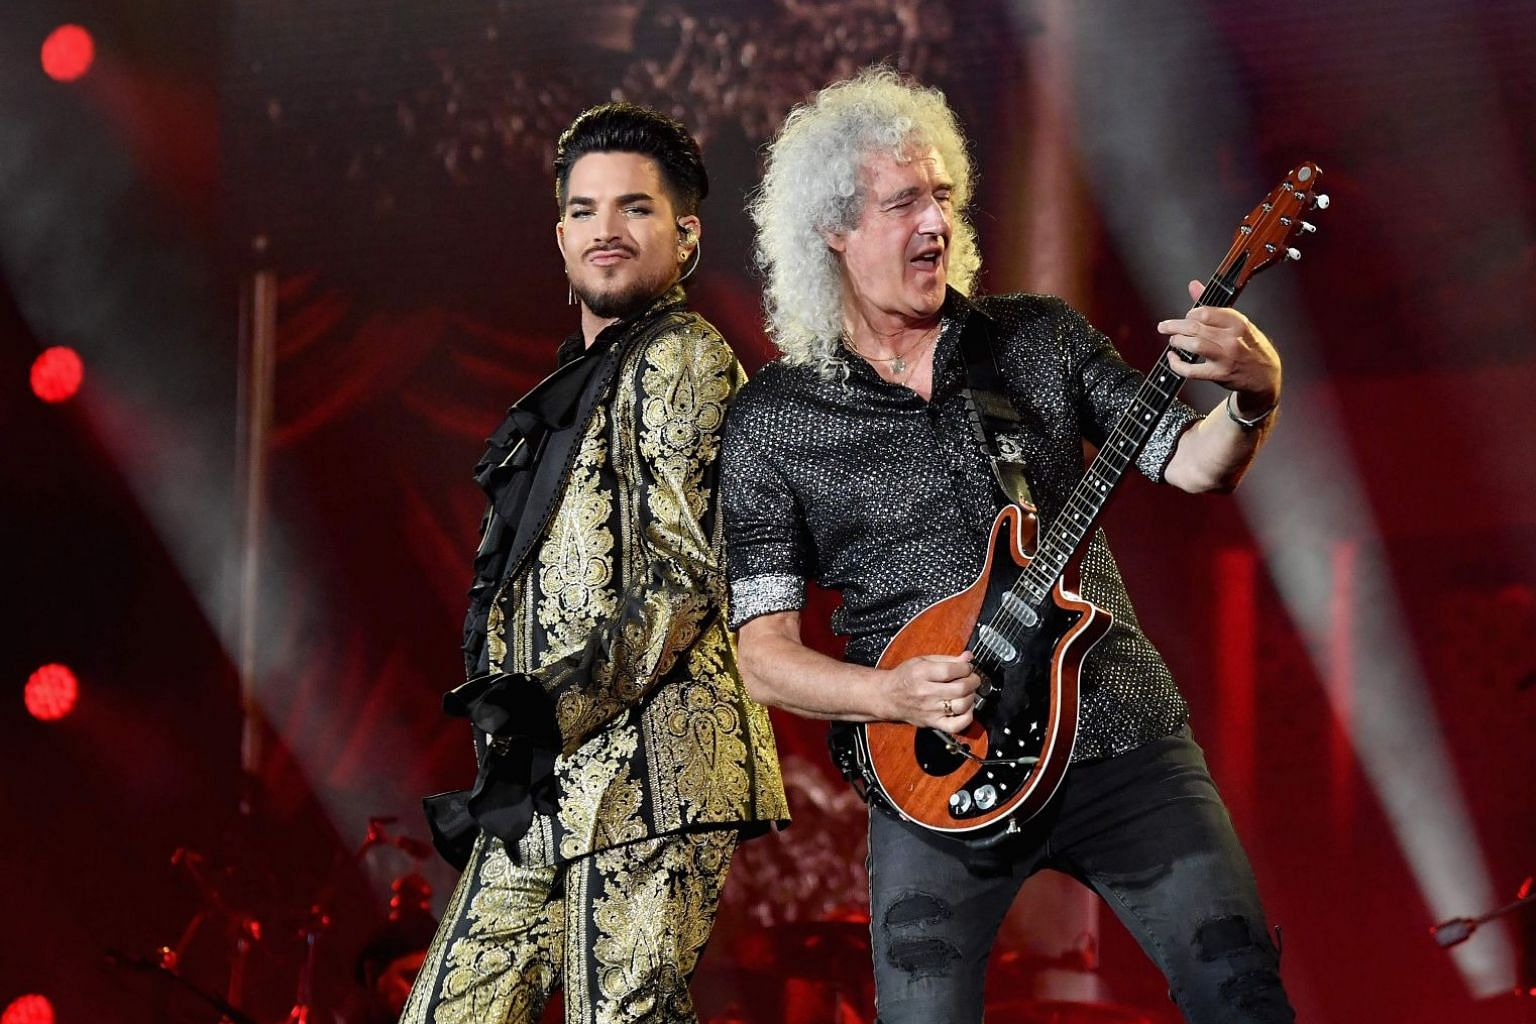 Adam Lambert (left) and Brian May of rock band Queen performing last year. Queen and Lambert have recorded a new version of We Are The Champions on their mobile phones under lockdown.